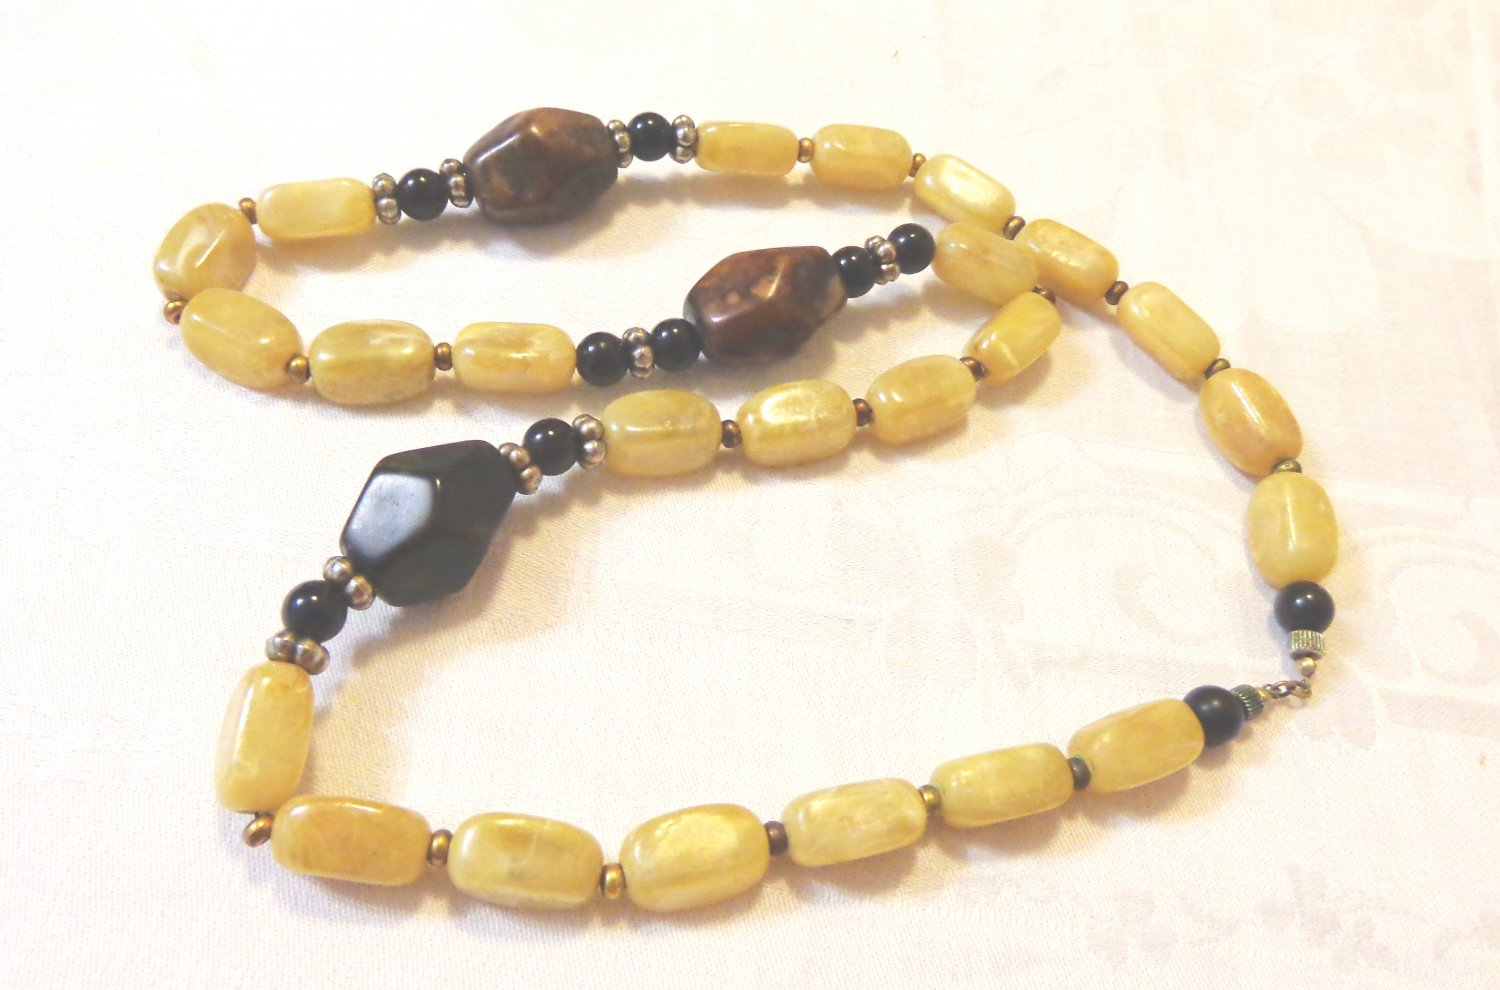 Opera length mixed bead necklace onyx and Bakelite look 34 inches perfect vintage ll3529